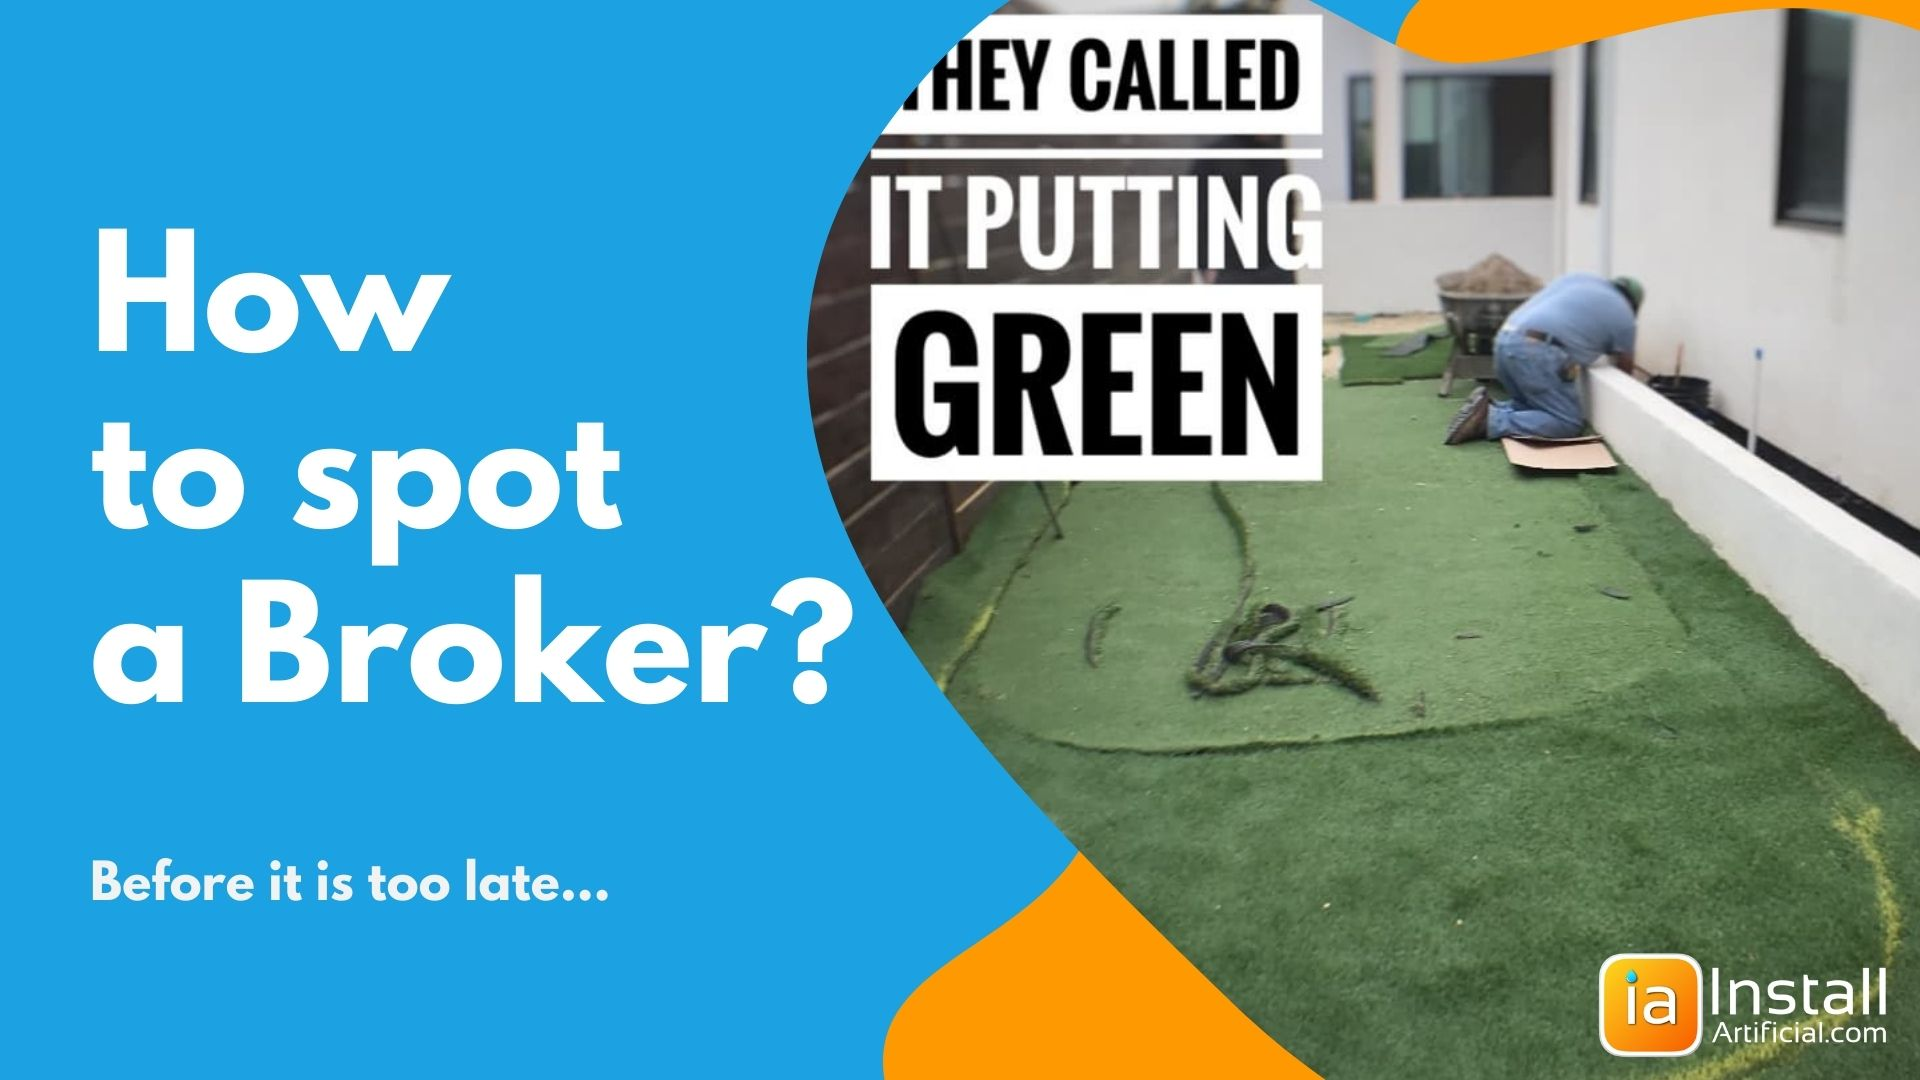 How to spot an artificial grass broker